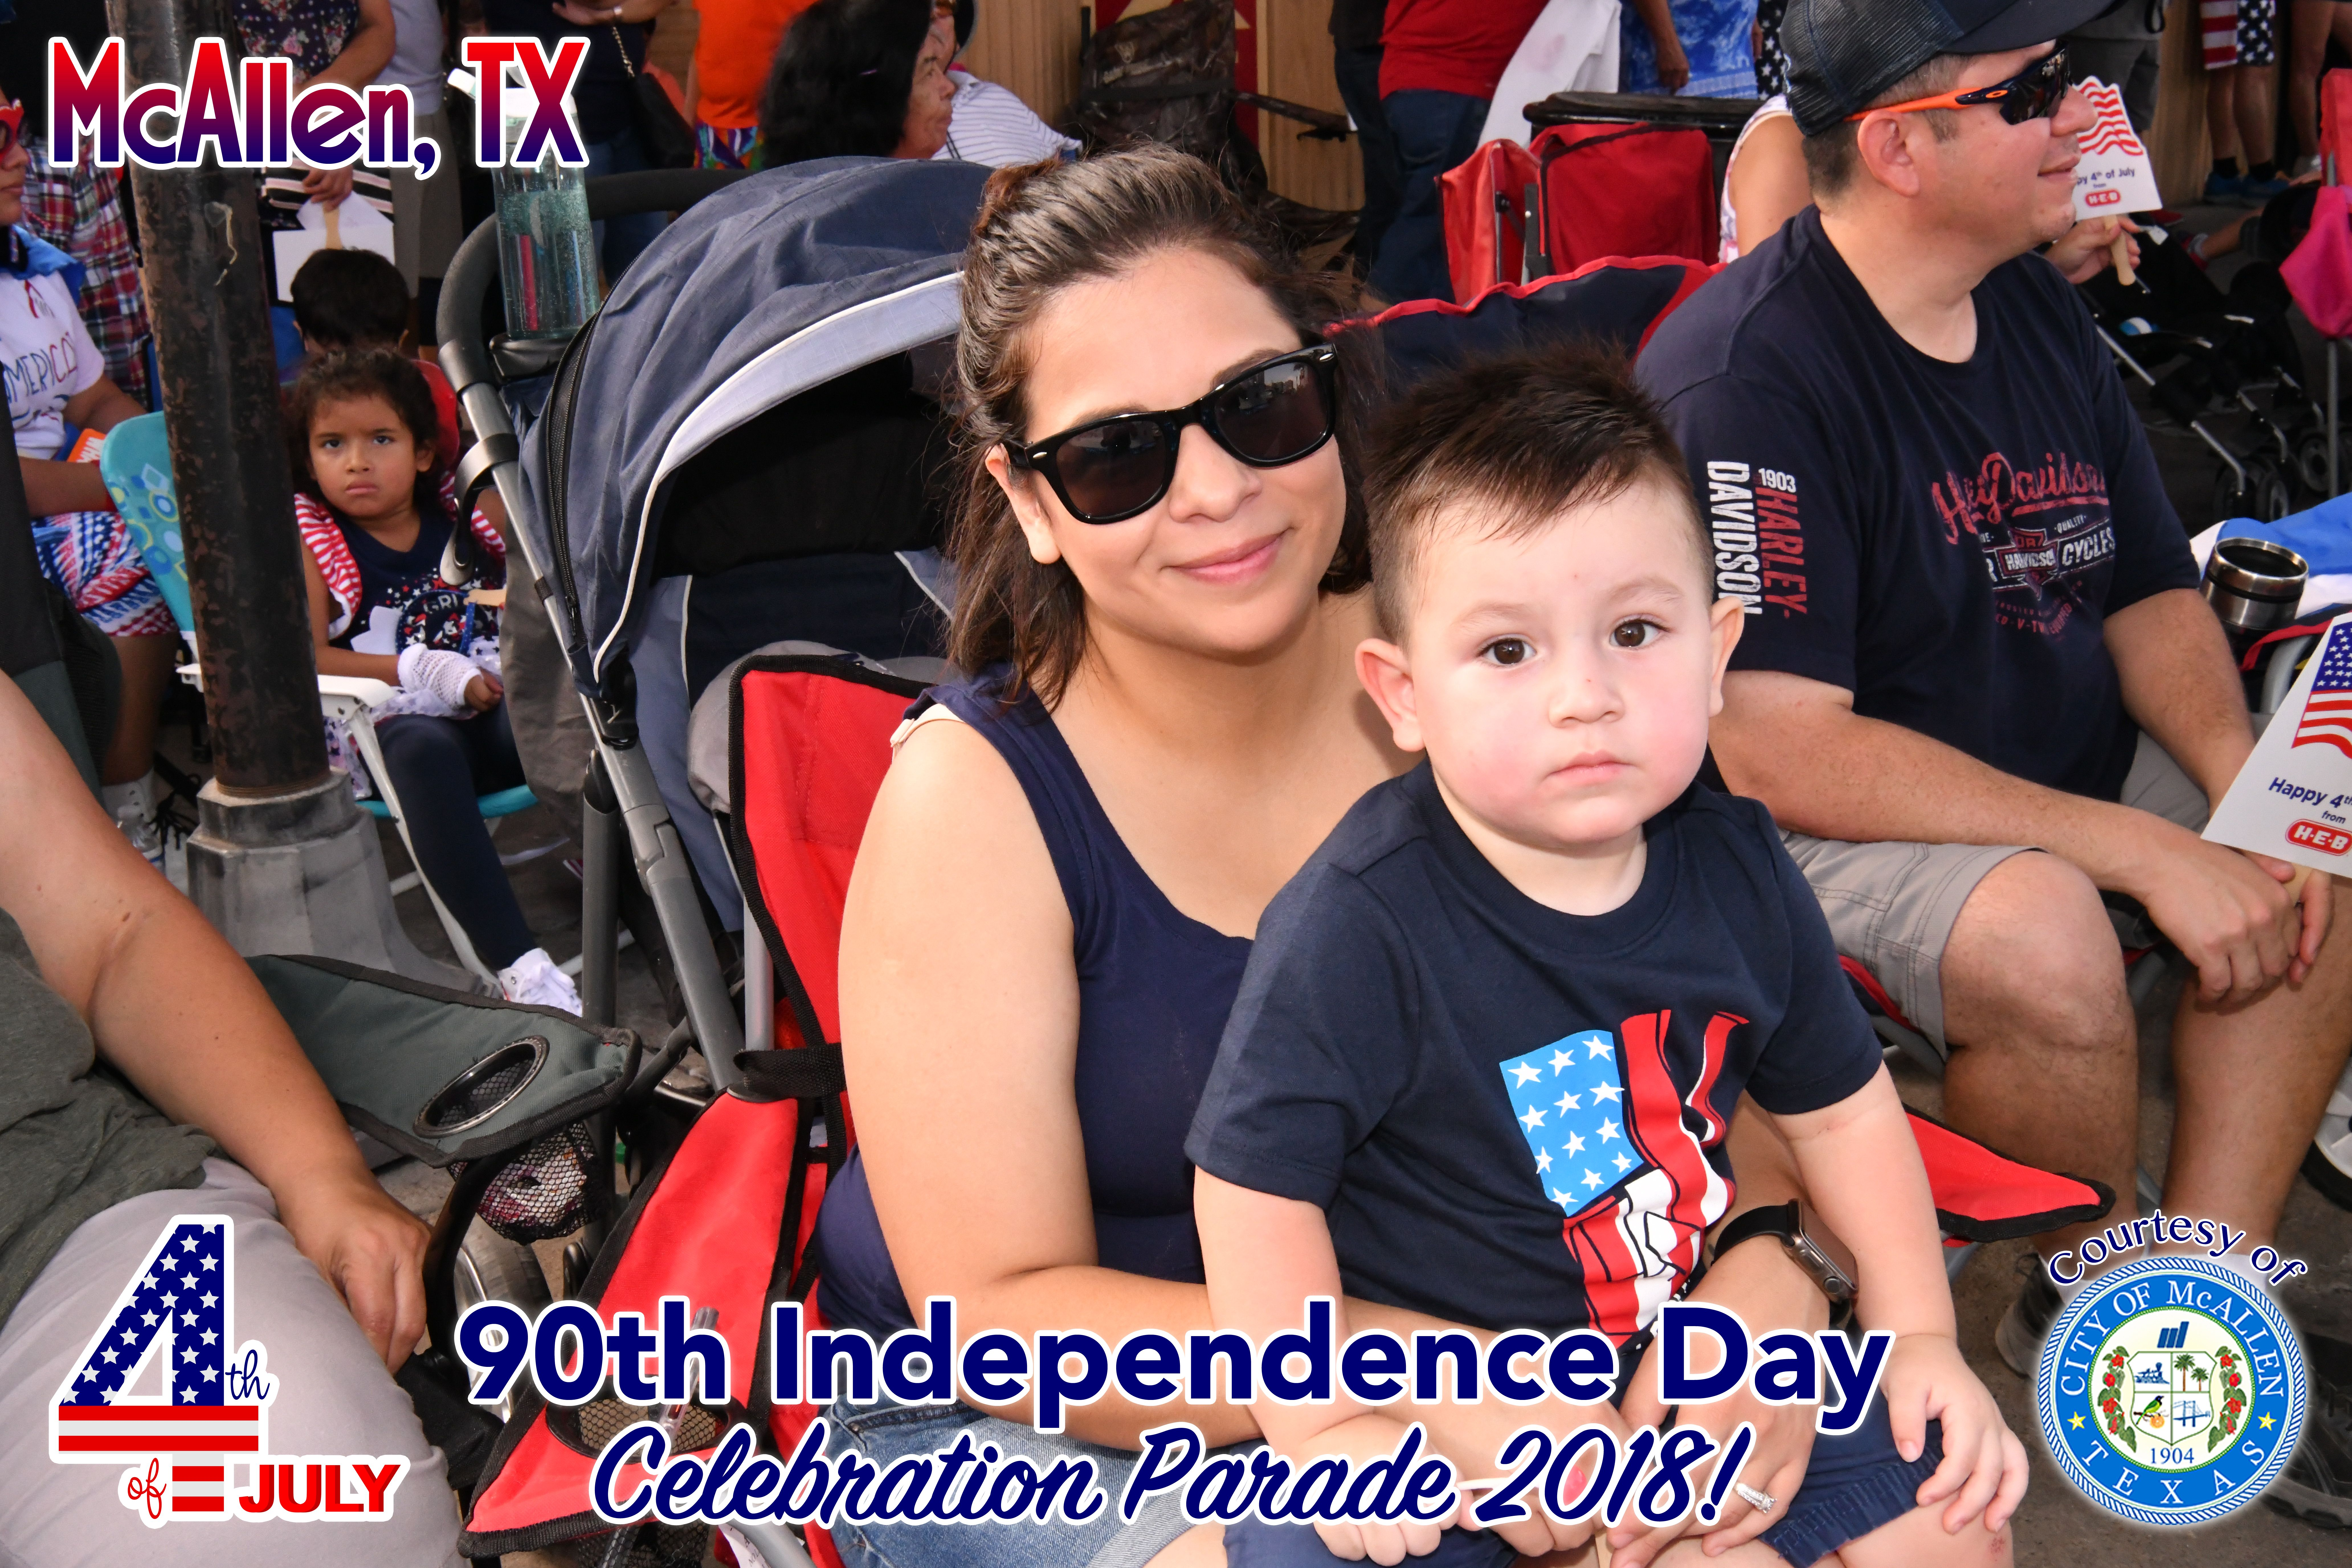 90th McAllen 4th of July Celebration Parade 2018 – Children with company